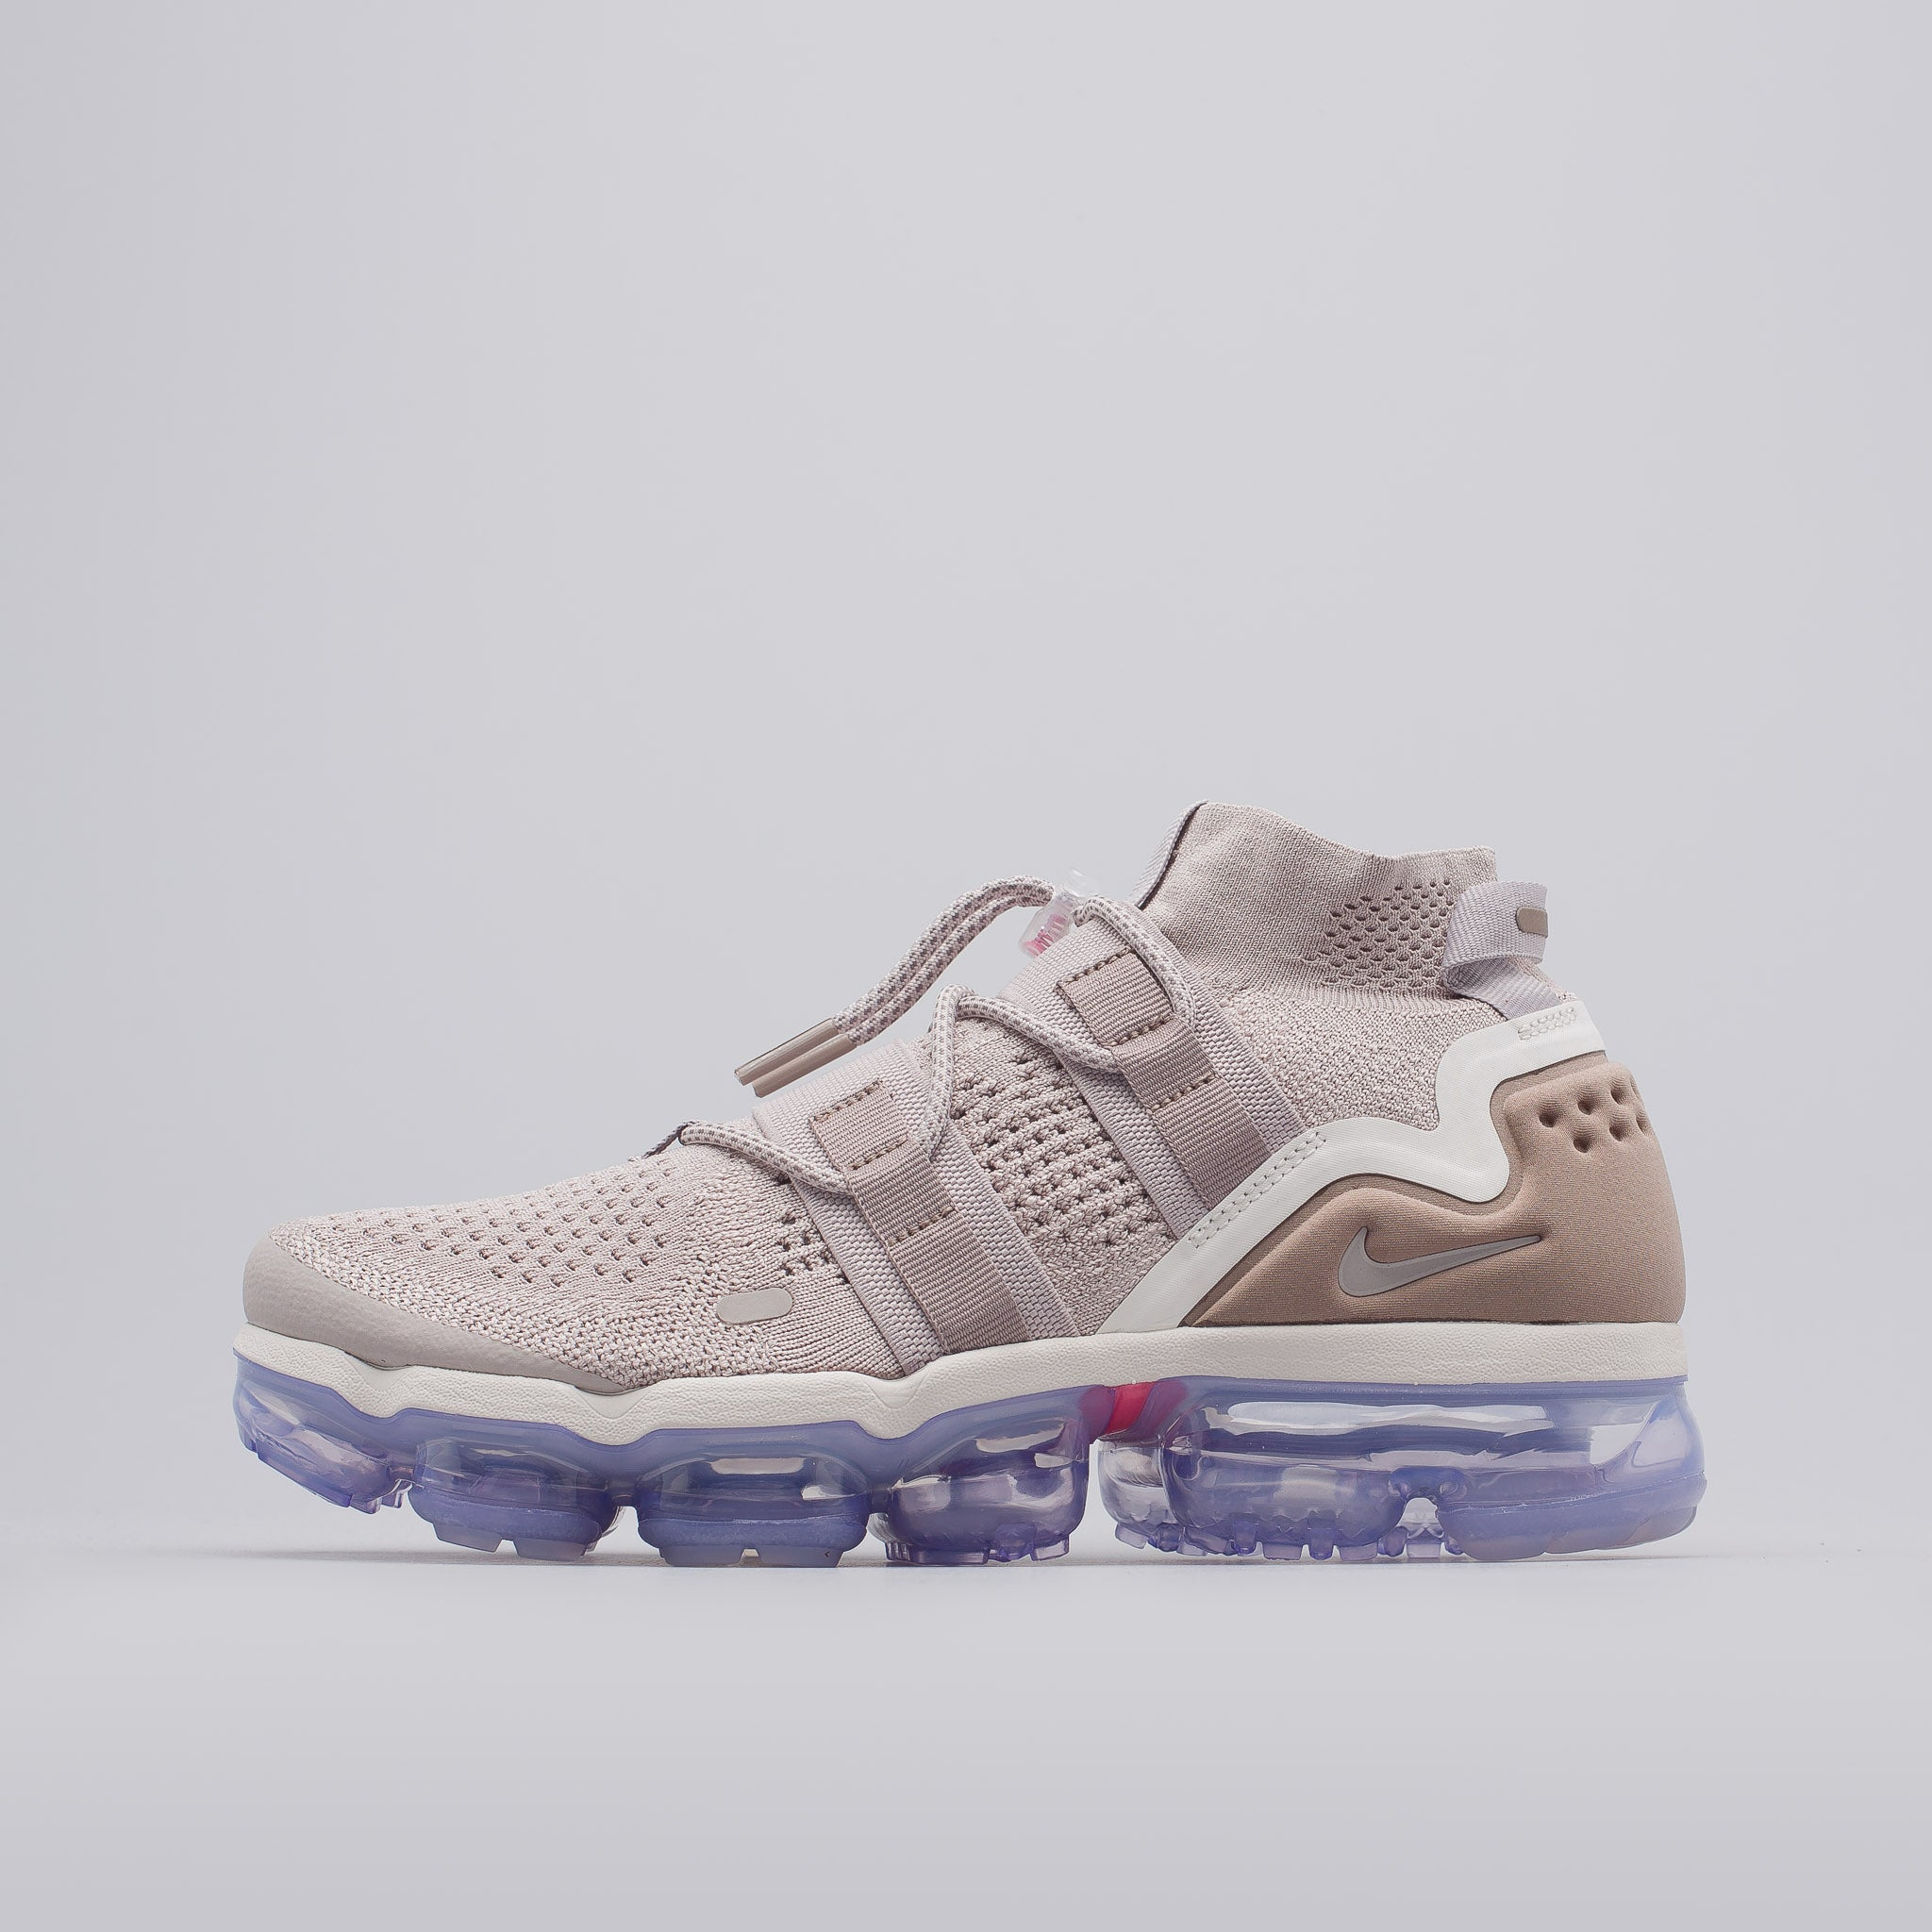 Air Vapormax FK Utility in Moon Particle